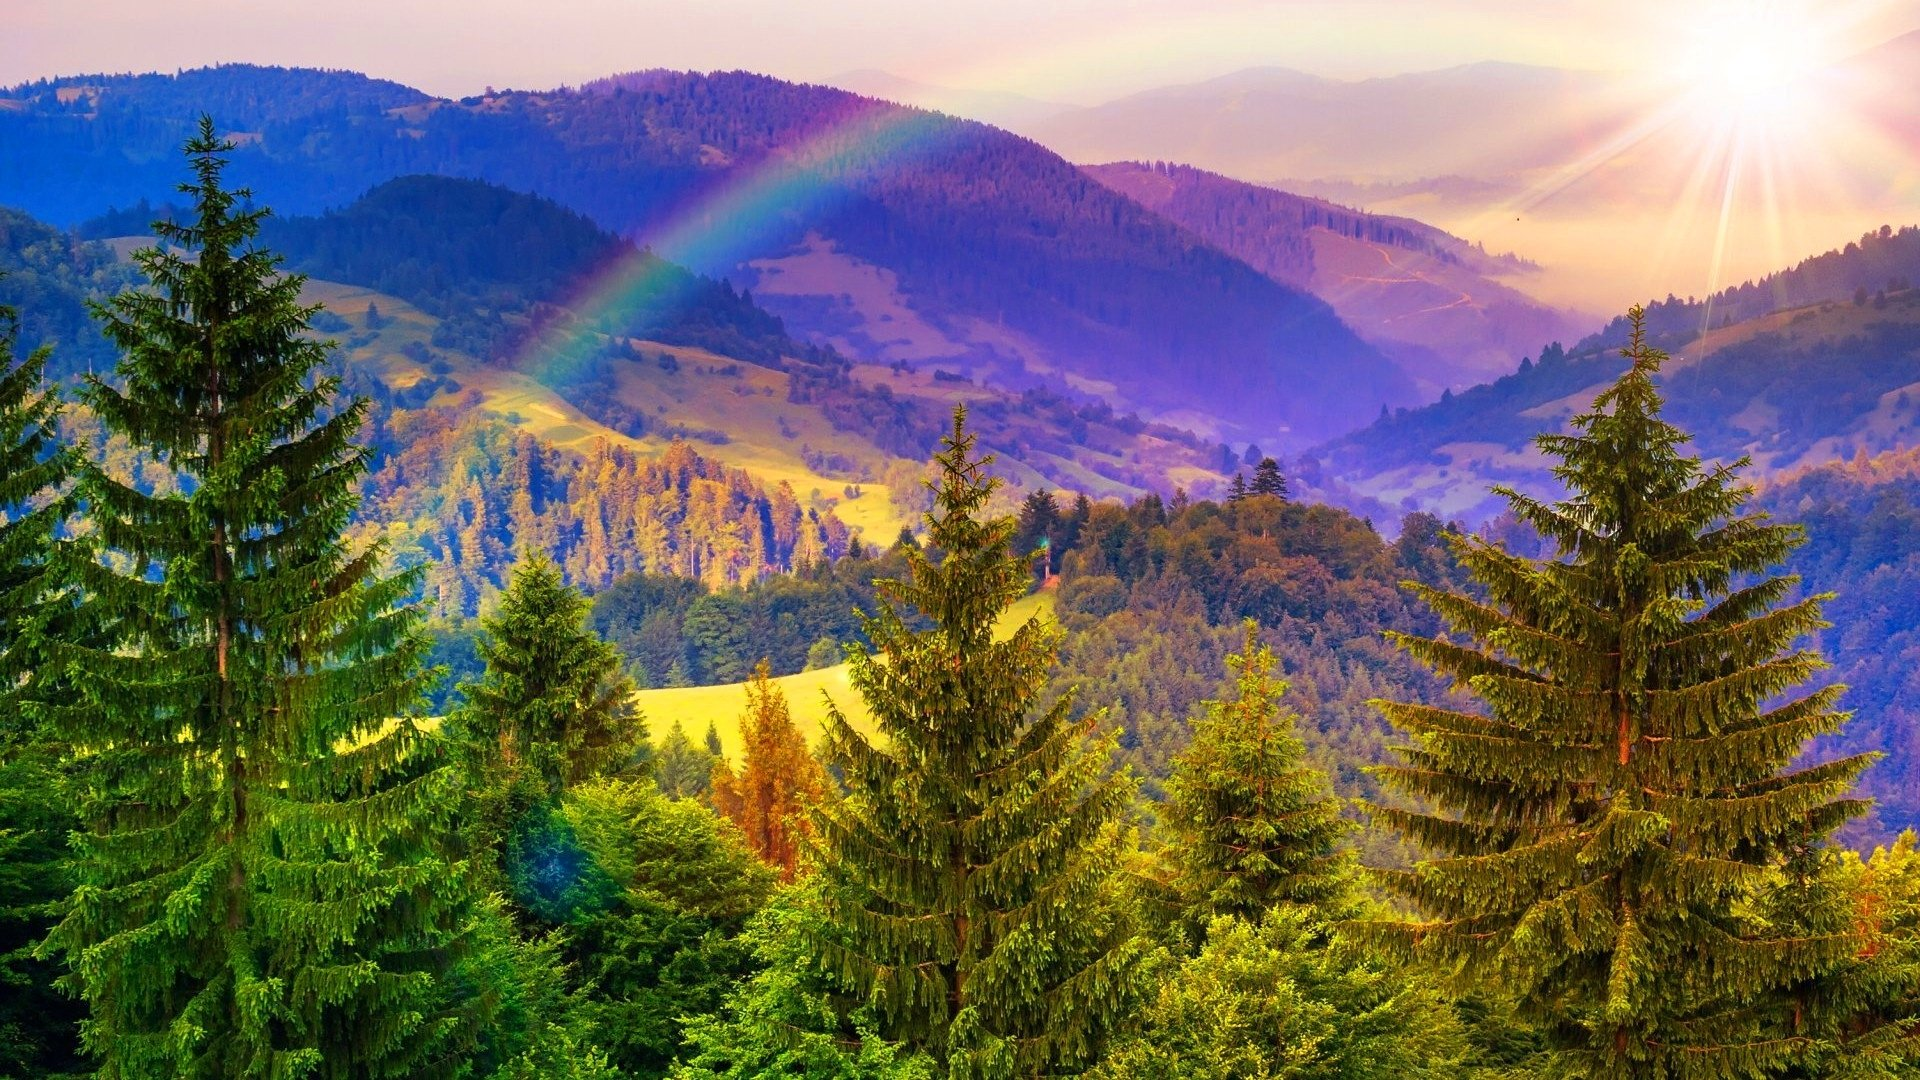 Fall Mountains Hd Wallpaper Pictures Rainbow Over Mountains Hd Wallpaper Background Image